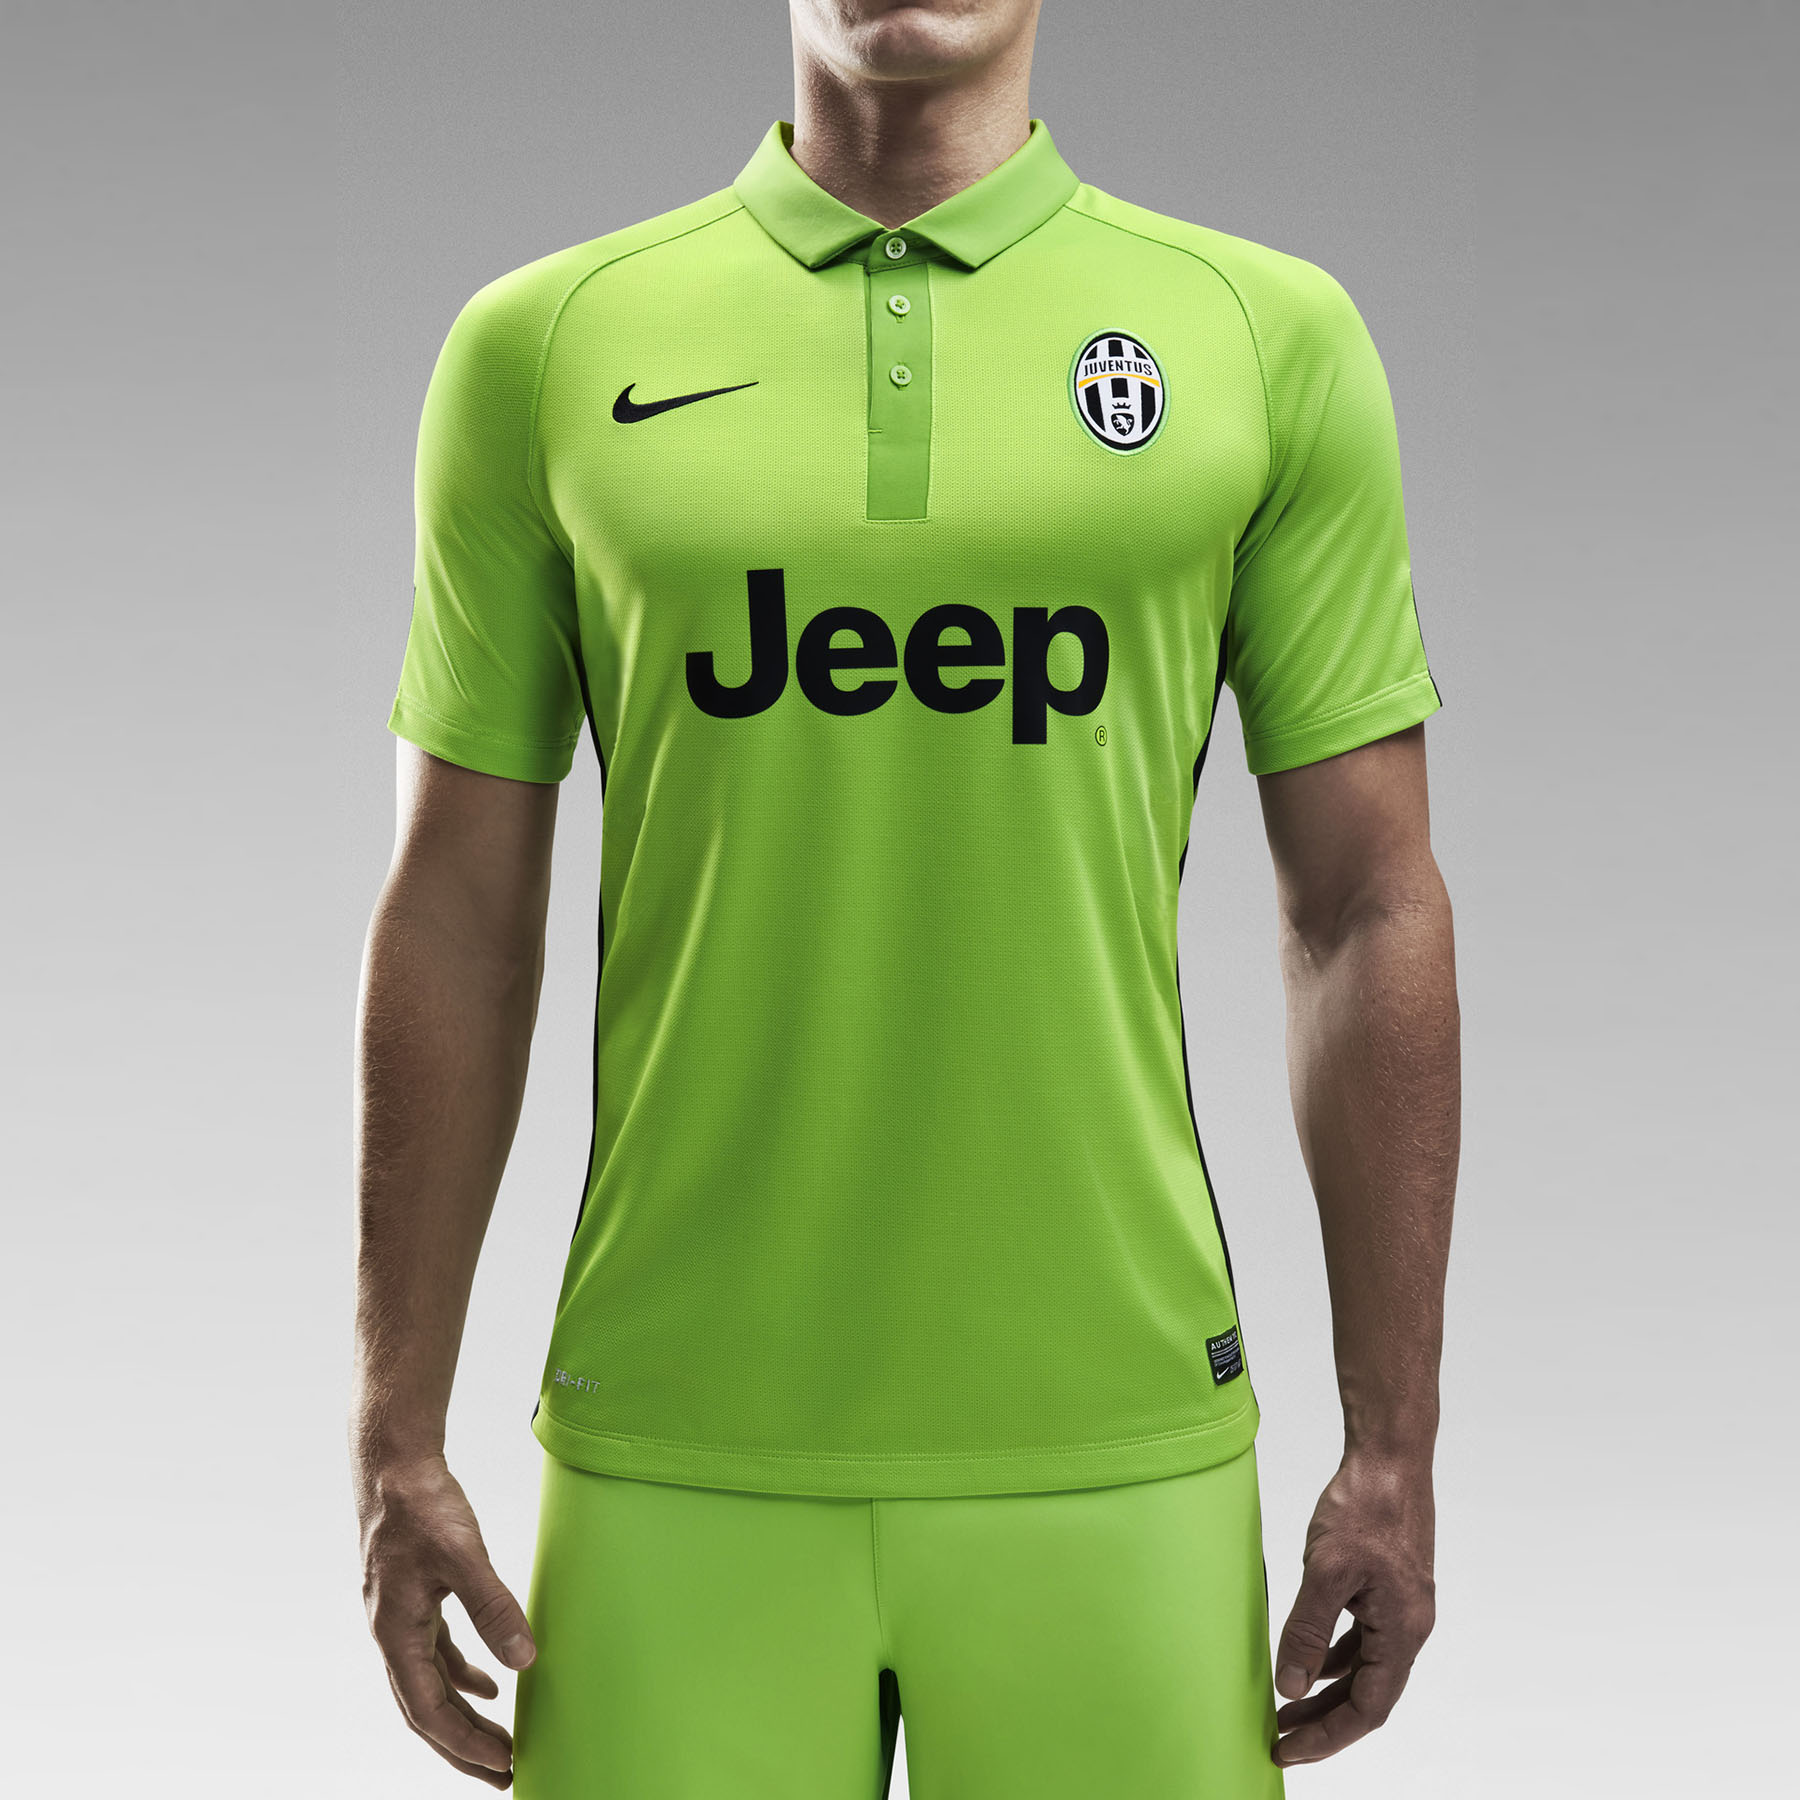 Juventus Third Shirt 2014/15 Green